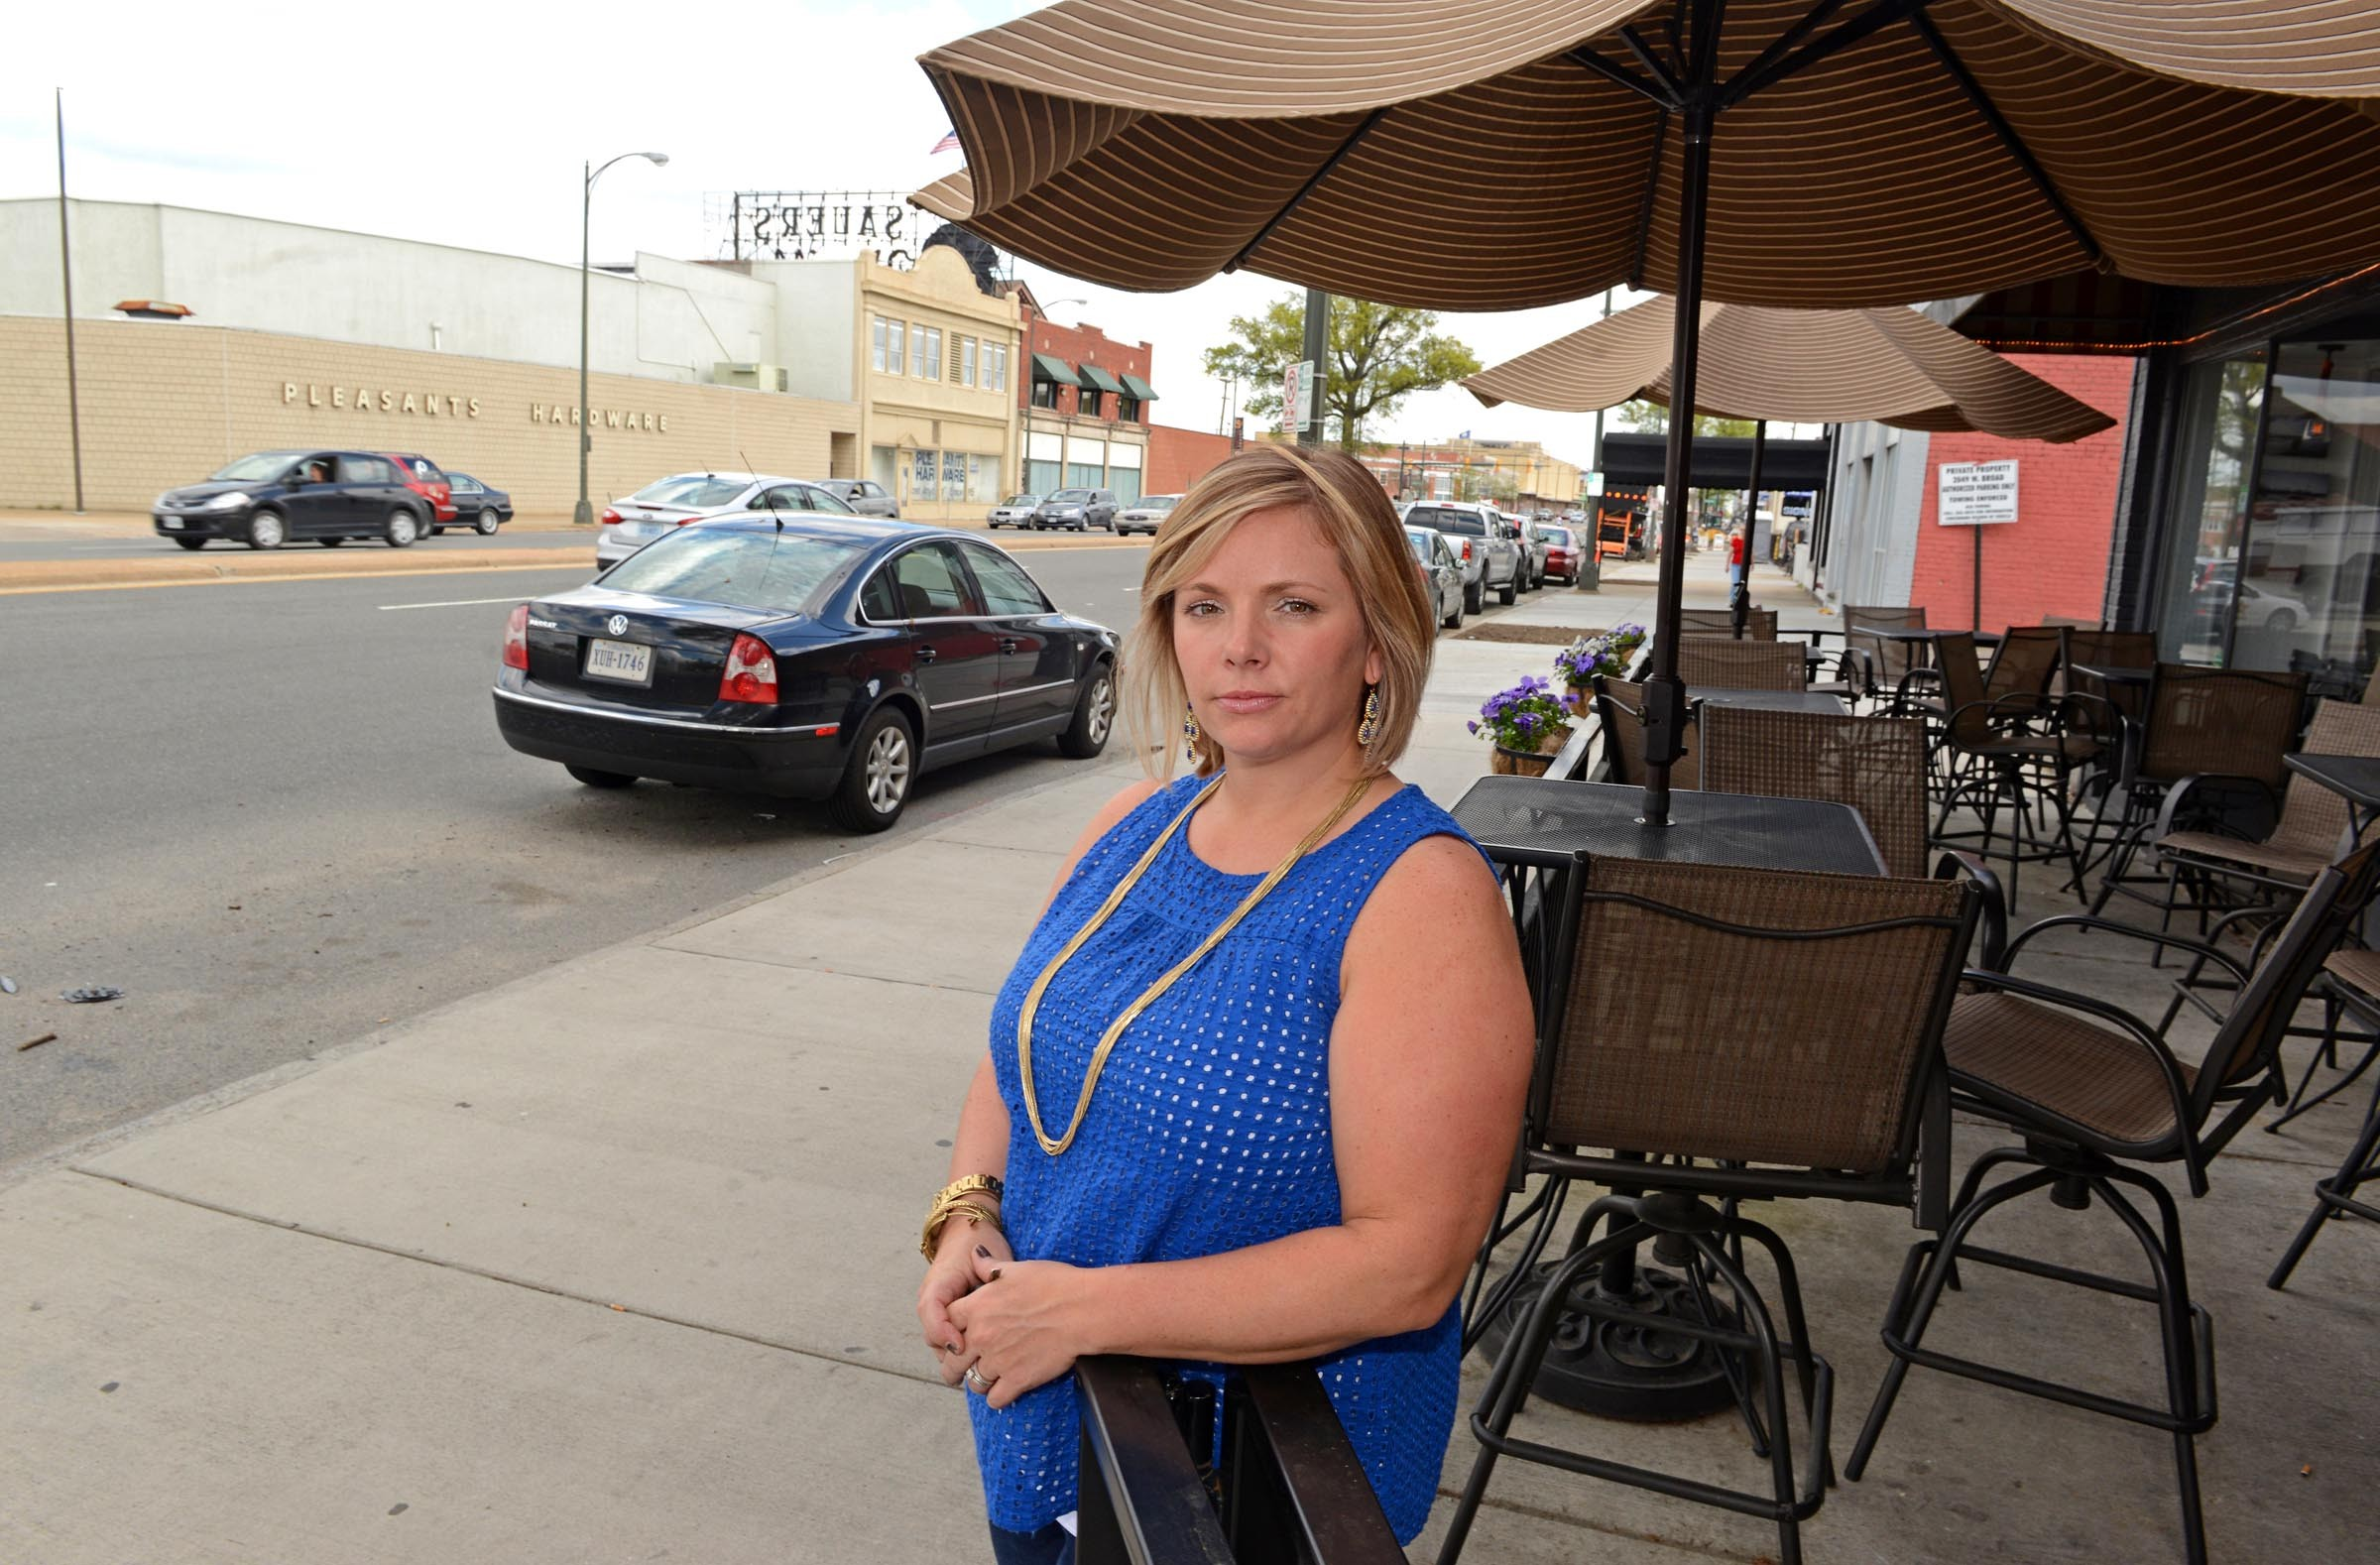 Jamie Bohdan, who owns Savory Grain on Broad Street across from Pleasants Hardware, is among a group of small-business owners opposed to the plan, largely because it eliminates 250 of 700 on-street parking spaces. - SCOTT ELMQUIST